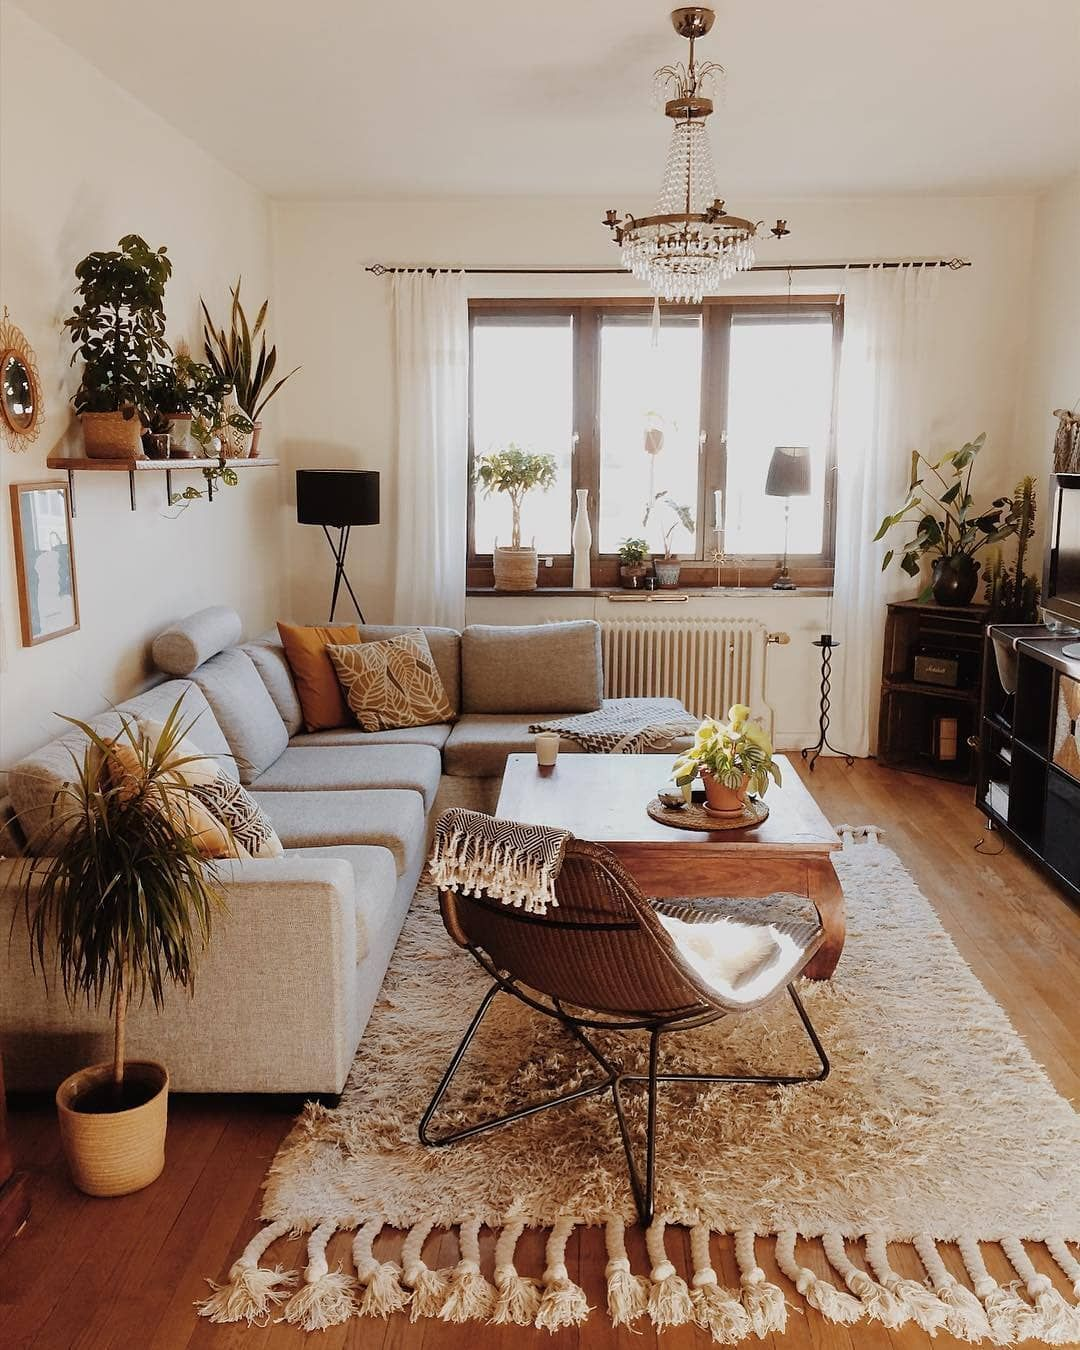 Buy Wholesale Home Decor Furniture From Wholesaler S Online Living Room Decor Apartment Modern Living Room Inspiration Apartment Living Room